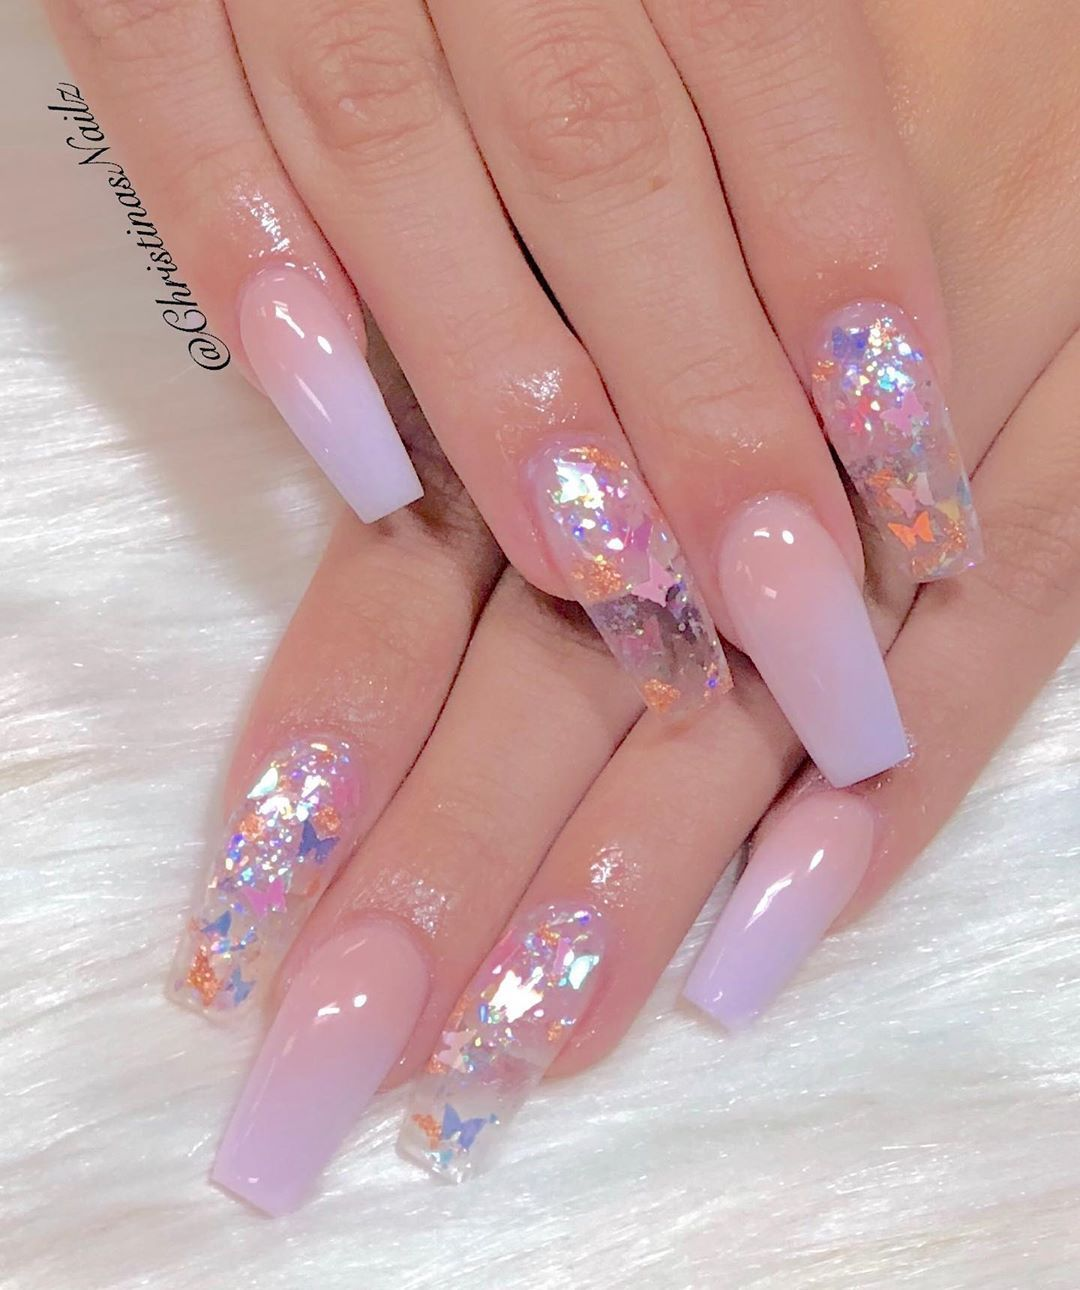 Incredibly Short Nail Art Page 35 Incredible Short Nail Art Page 35 Unglaublichkurznailar In 2020 Best Acrylic Nails Purple Acrylic Nails Summer Acrylic Nails